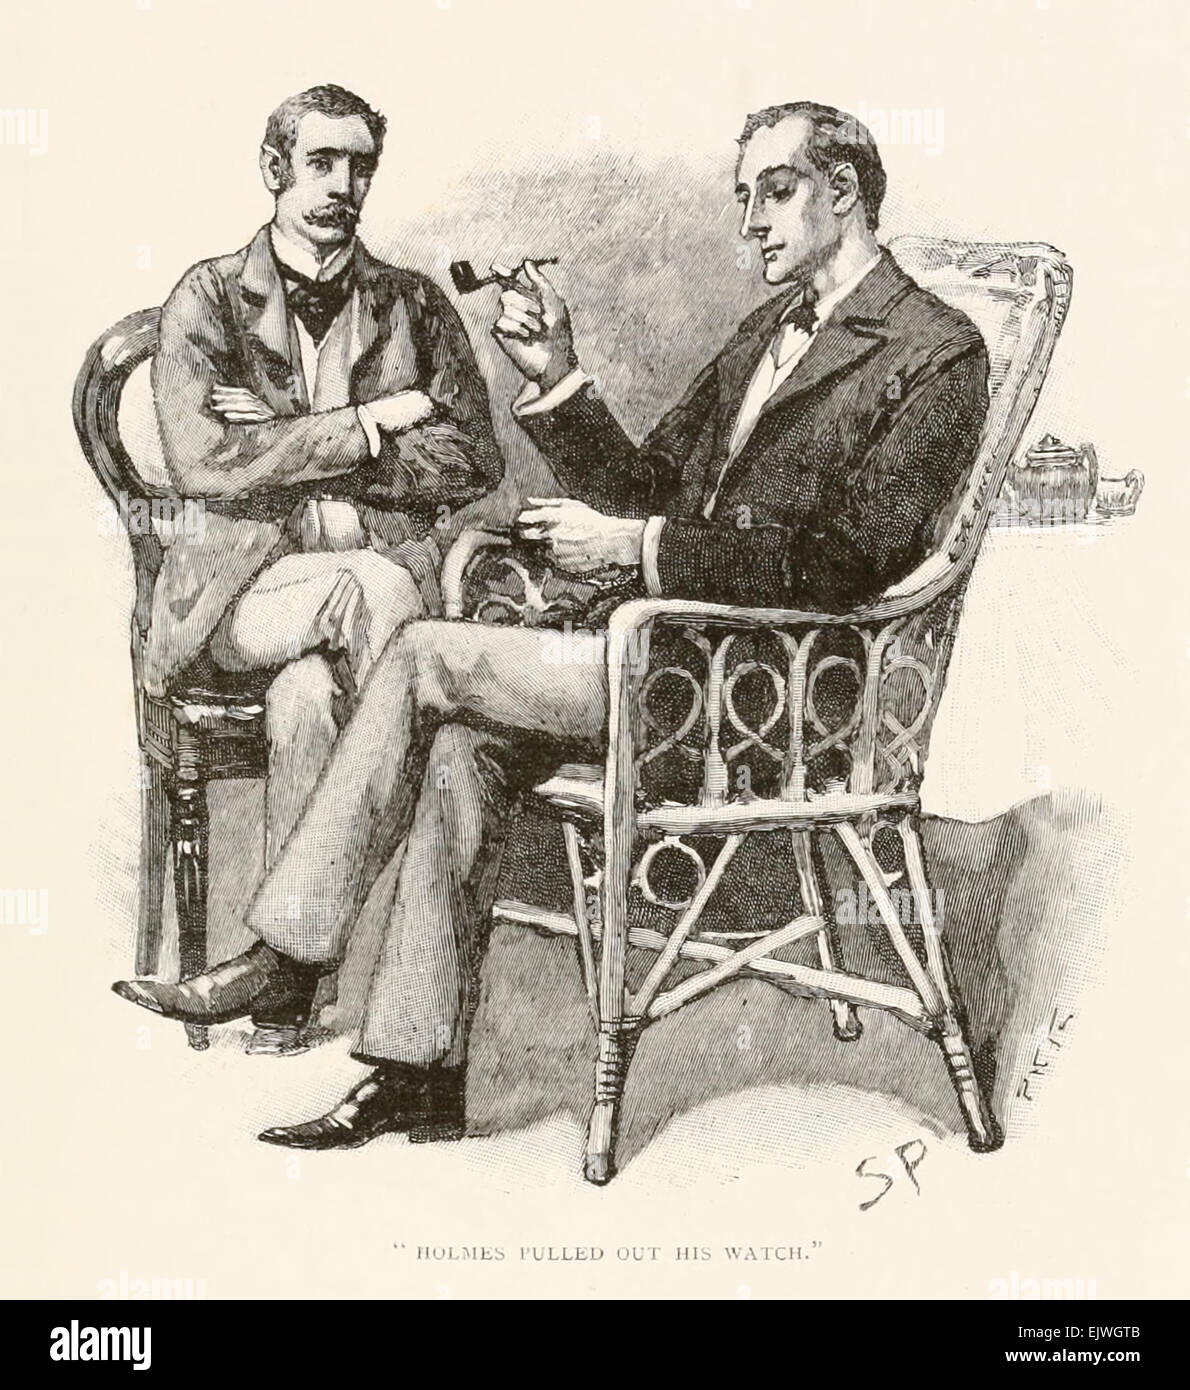 Holmes pulled out his watch - from 'The Greek Interpreter' by Arthur Conan Doyle (1859-1930). Illustration - Stock Image